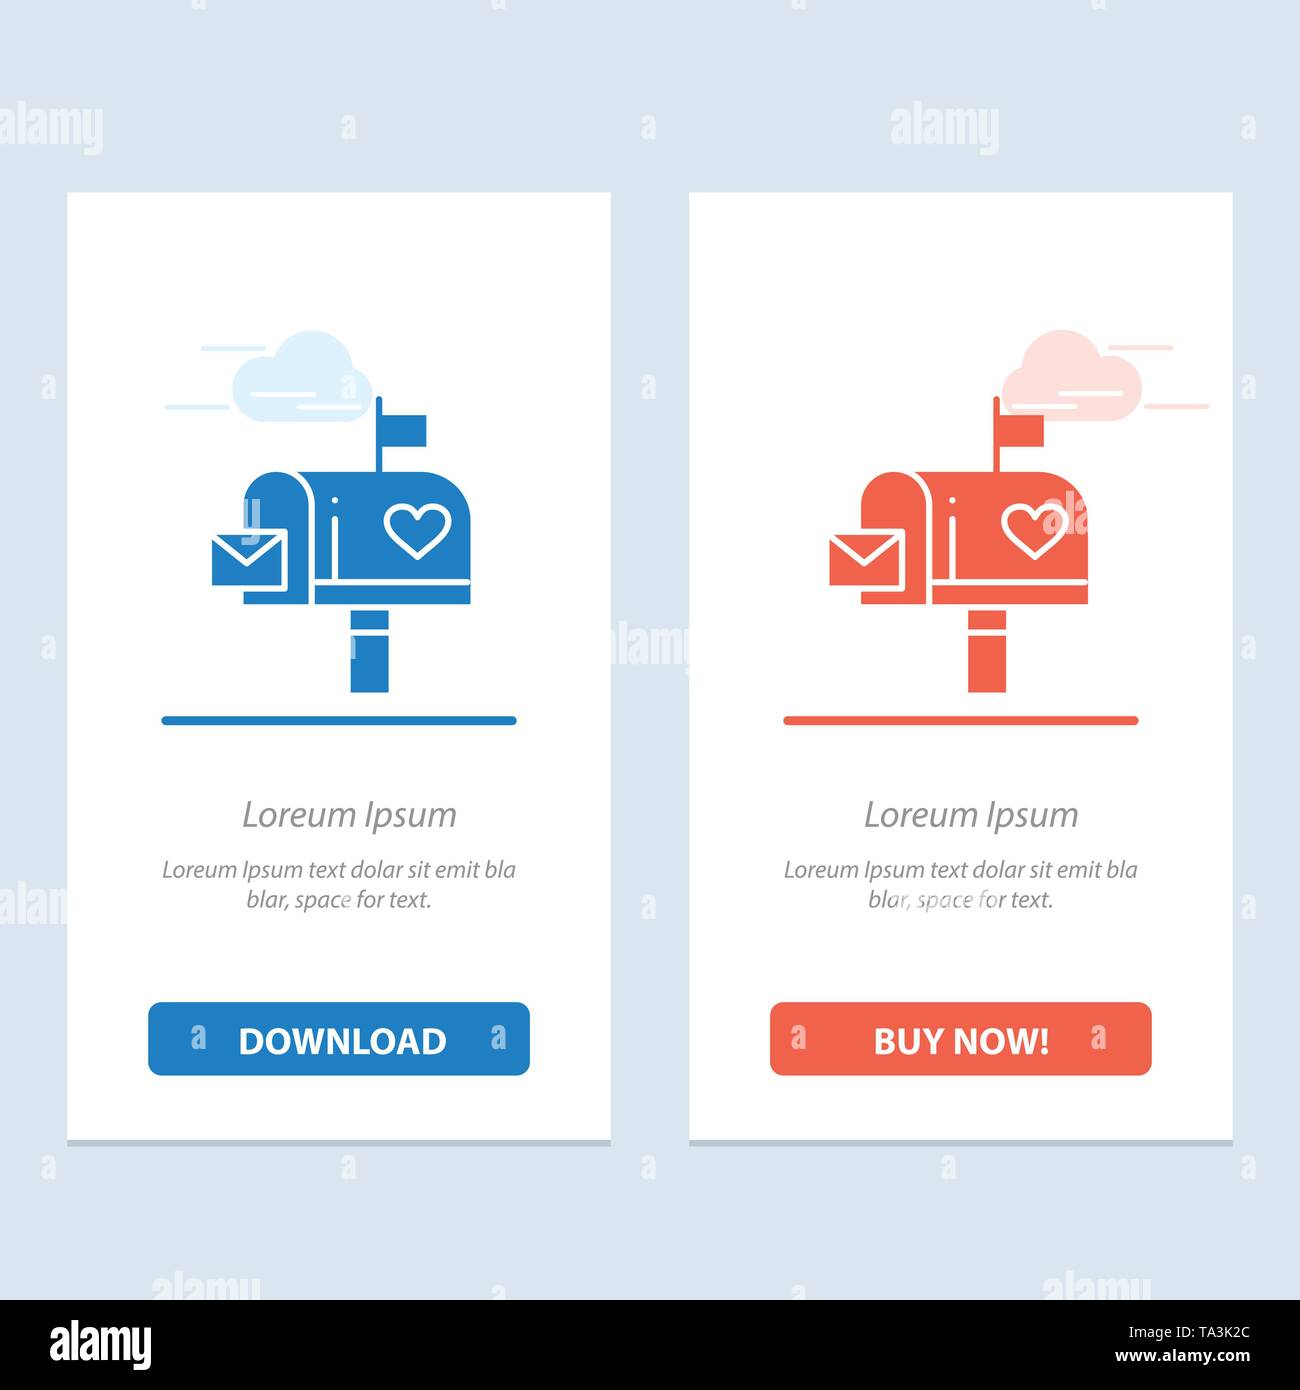 Mailbox, Mail, Love, Letter, Letterbox  Blue and Red Download and Buy Now web Widget Card Template - Stock Image